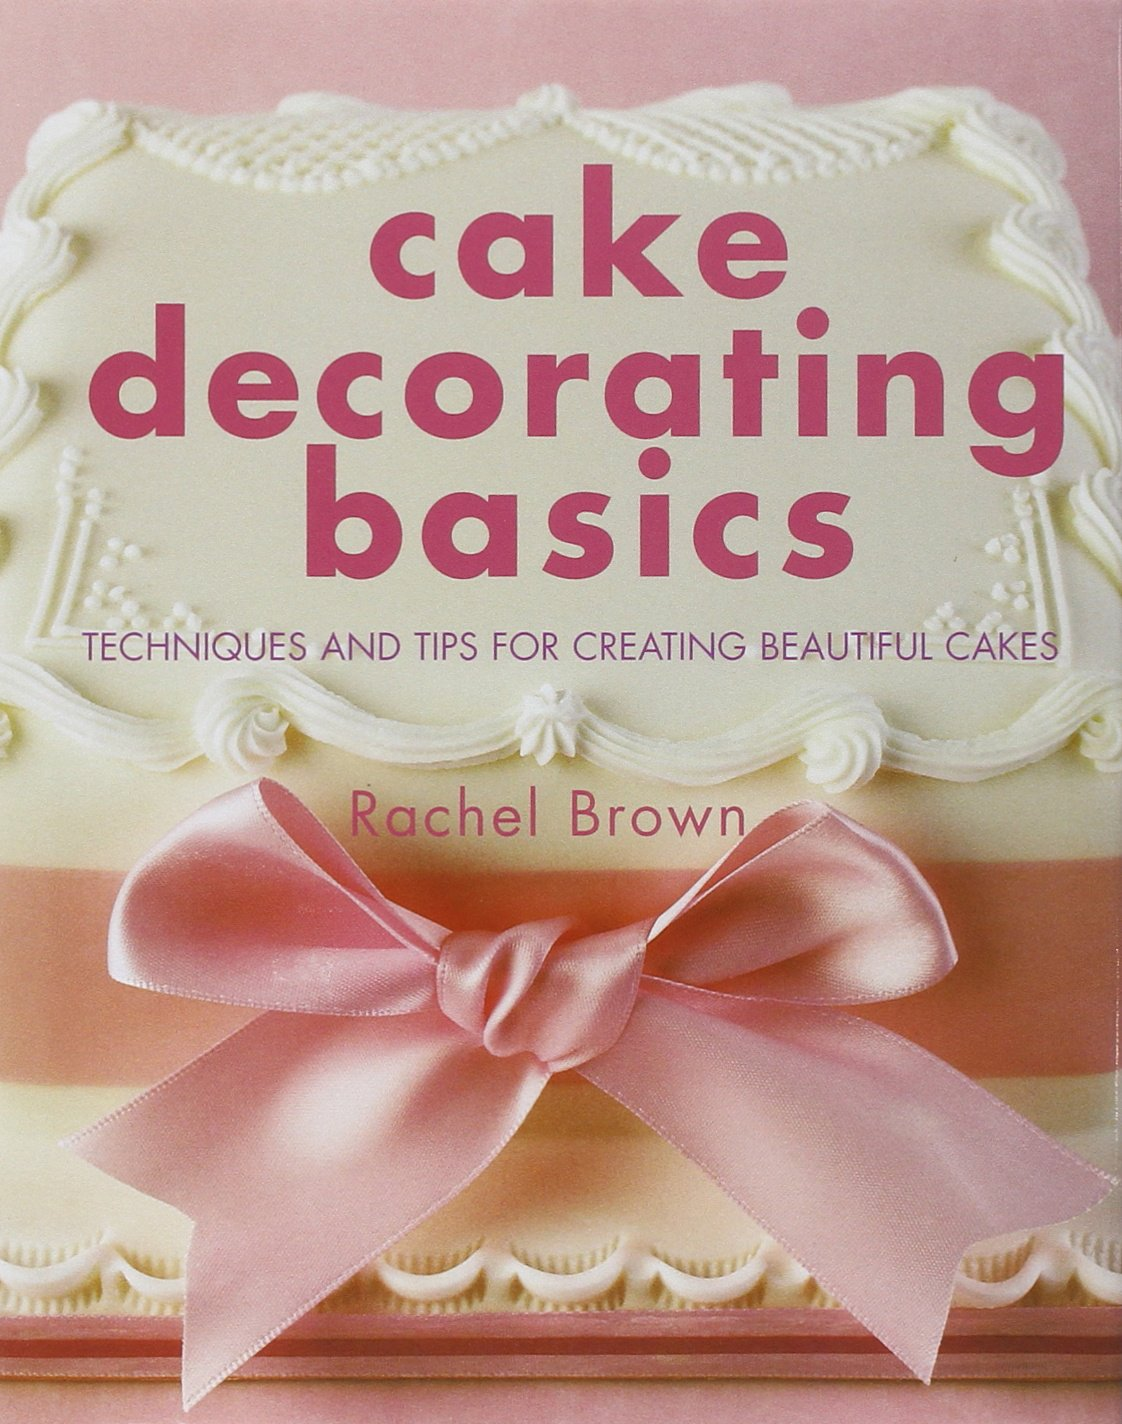 Lovely Cake Decorating Basics: Techniques And Tips For Creating Beautiful Cakes:  Rachel Brown: 9781845375188: Amazon.com: Books